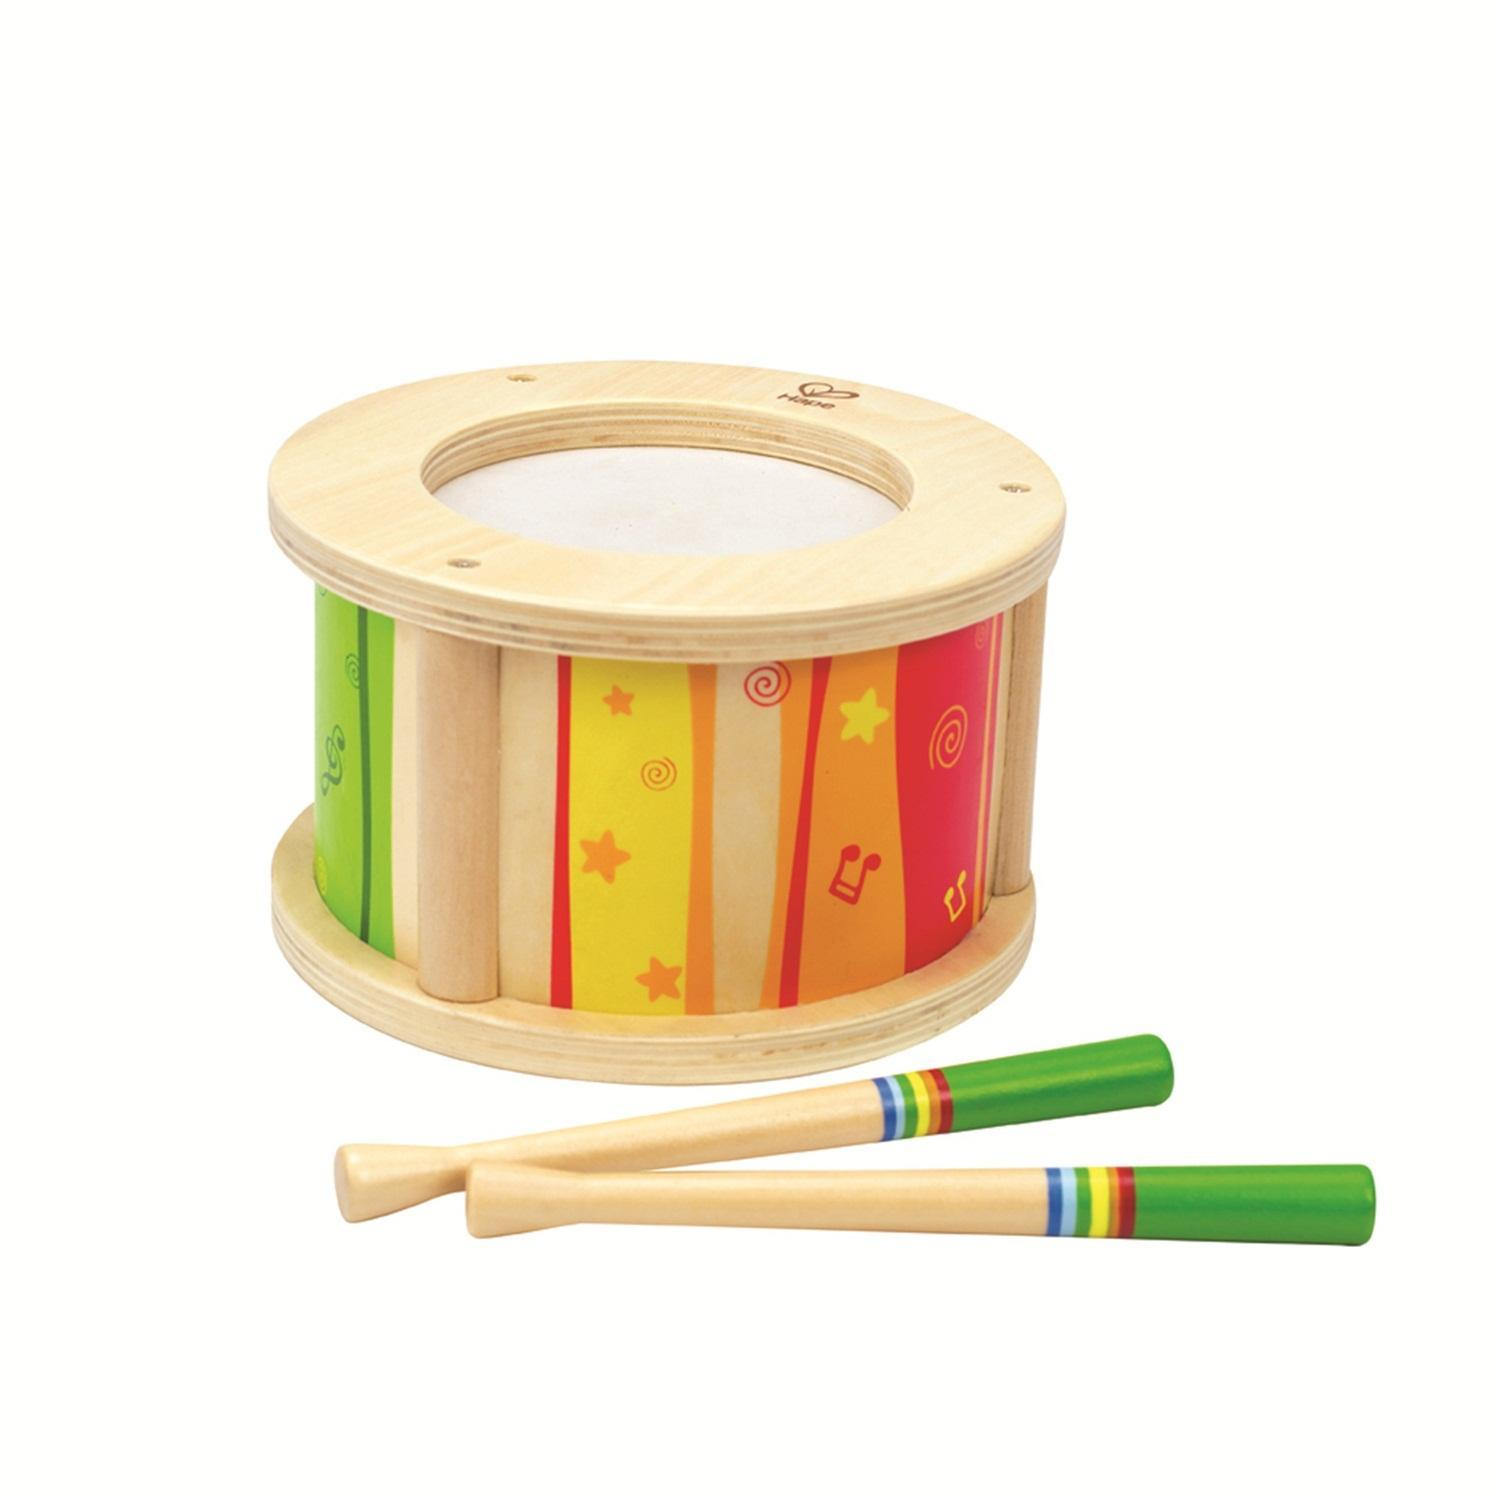 Hape Early Melodies Drum Hape Musical Toys at Little Earth Nest Eco Shop